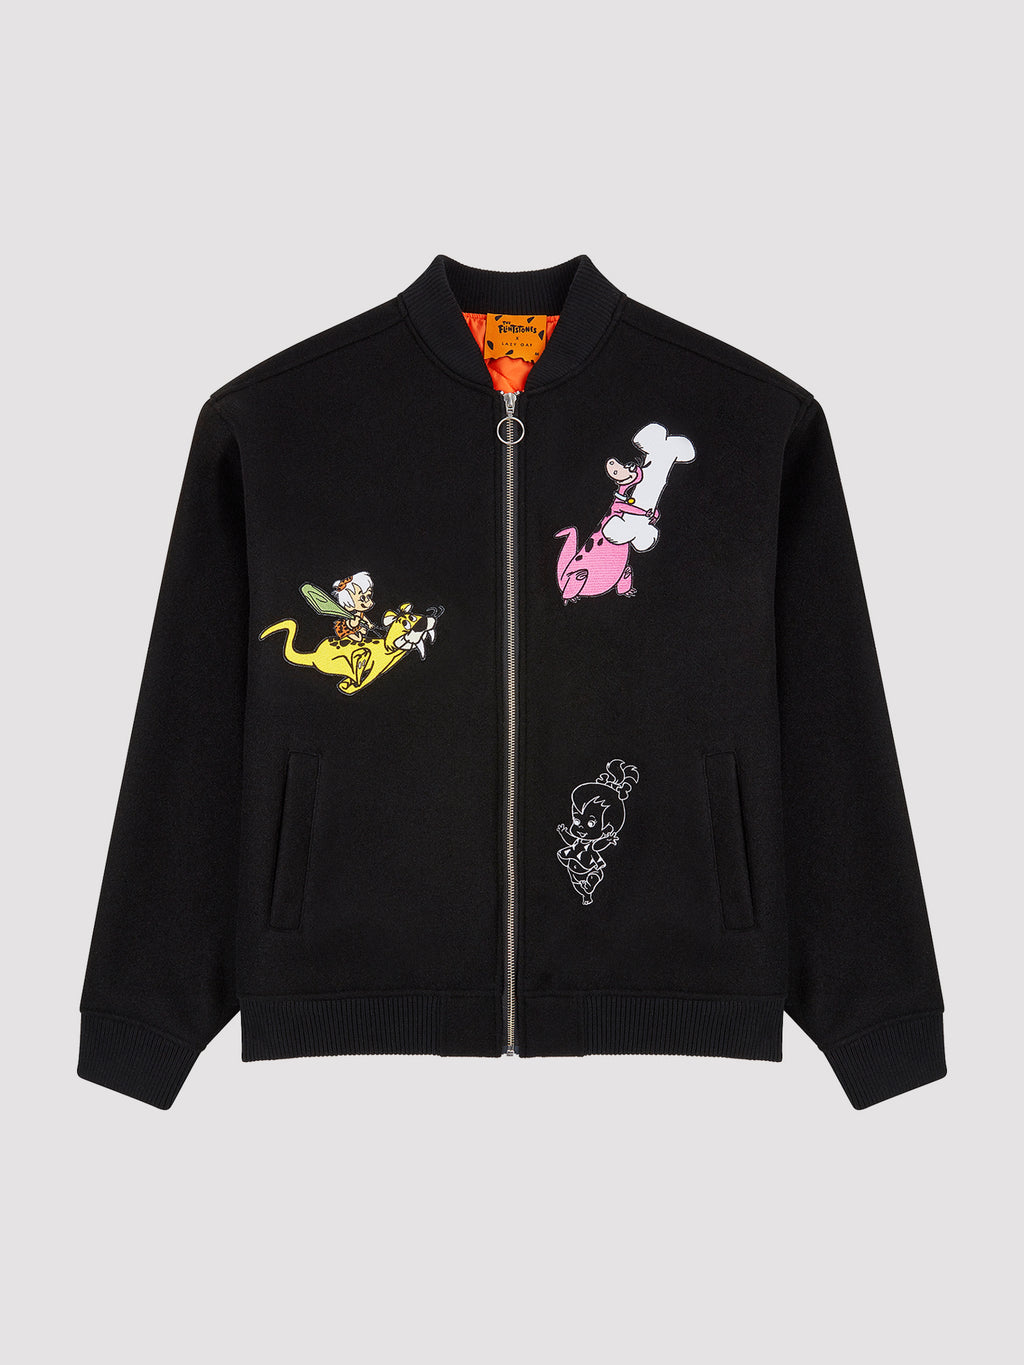 Lazy Oaf x The Flintstones Character Bomber Jacket